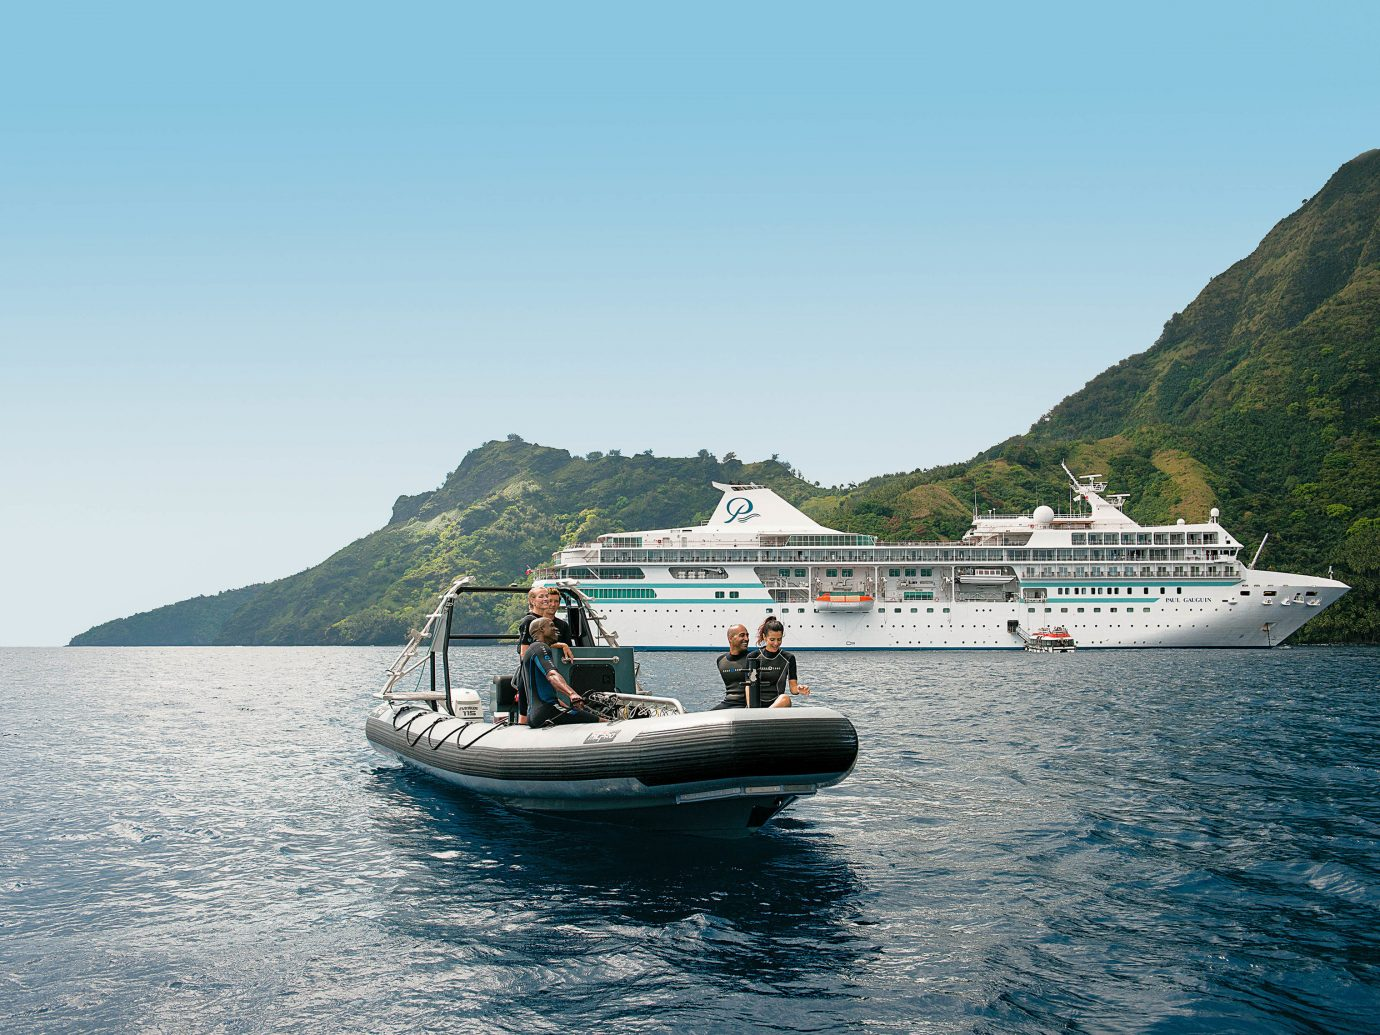 Cruise Travel Luxury Travel Trip Ideas water sky outdoor Boat mountain water transportation waterway watercraft passenger ship Sea boating motor ship ship cruise ship yacht motorboat ferry tourism fjord luxury yacht traveling